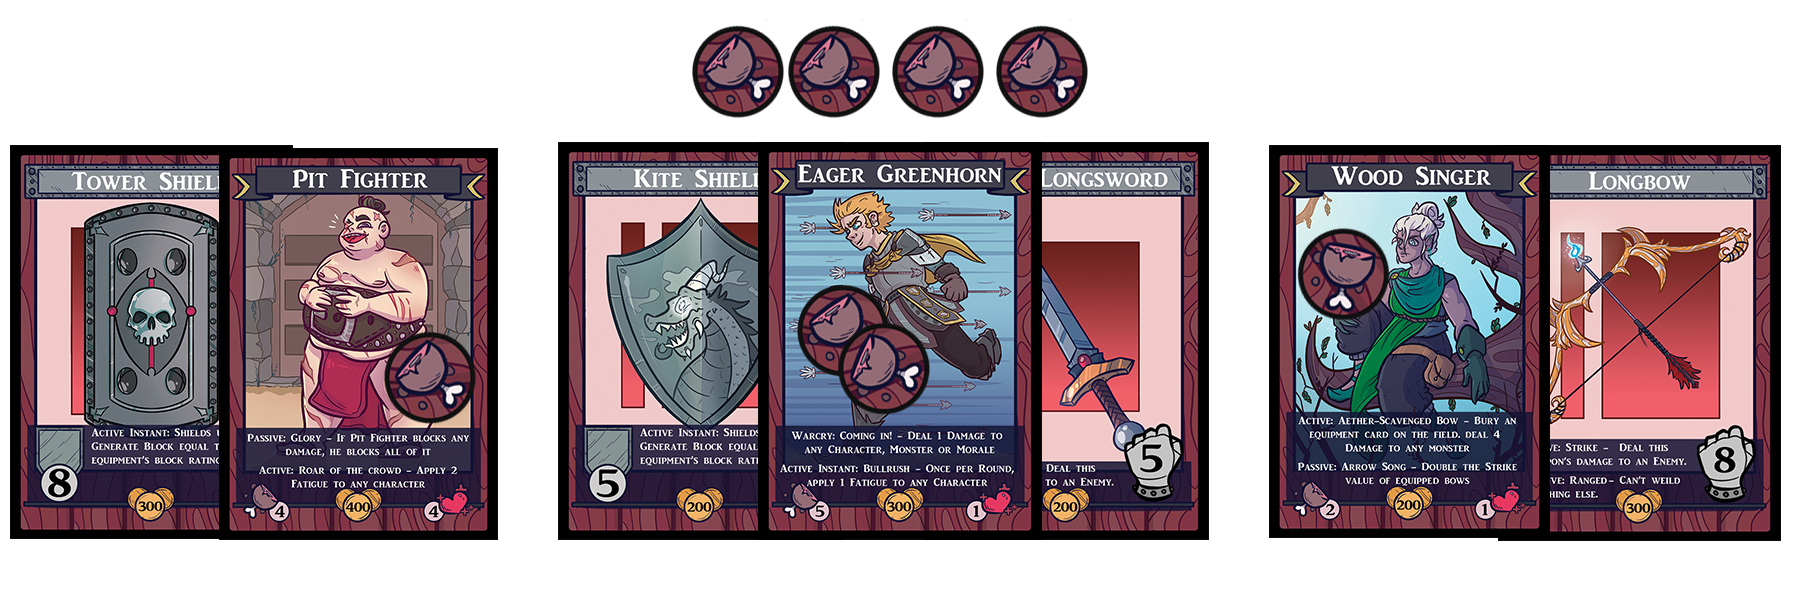 We join this fictional player at the start of their second turn, and they have a pretty nice board set up. The first thing they have done is collect  FOUR fatigue tokens , and arranged them along the top of their  'Field'  (Where they'll play their heroes at a max of four.)   The Pit Fighter on the left has been equipped with a Tower Shield, which allows him to block up to  eight  points of damage. We can see he's already taken an action, to either block or perhaps collect a loot card, but he has a  Fatigue Rating  of four, so he's good to stay out for a while longer yet.   The Eager Greenhorn has a smaller shield and a sword, with two out of five actions taken for him. The cards can be  tucked  under the Hero card to show they're equipped with the weapons. Once you  deploy  a Hero or weapon card, they cannot be swapped out until the Hero leaves the field.   The ace up the sleeve for our fictitious player is the  Wood Singer . While they only have a Fatigue Rating of two, this card has a passive ability to  DOUBLE  the attack power of ranged weapons. And it just so happens, this Wood Singer is wielding a Longbow.  Sixteen damage  in a single action is more than enough to wipe out basic monsters, but when the  evolve  it may take a few more shots!